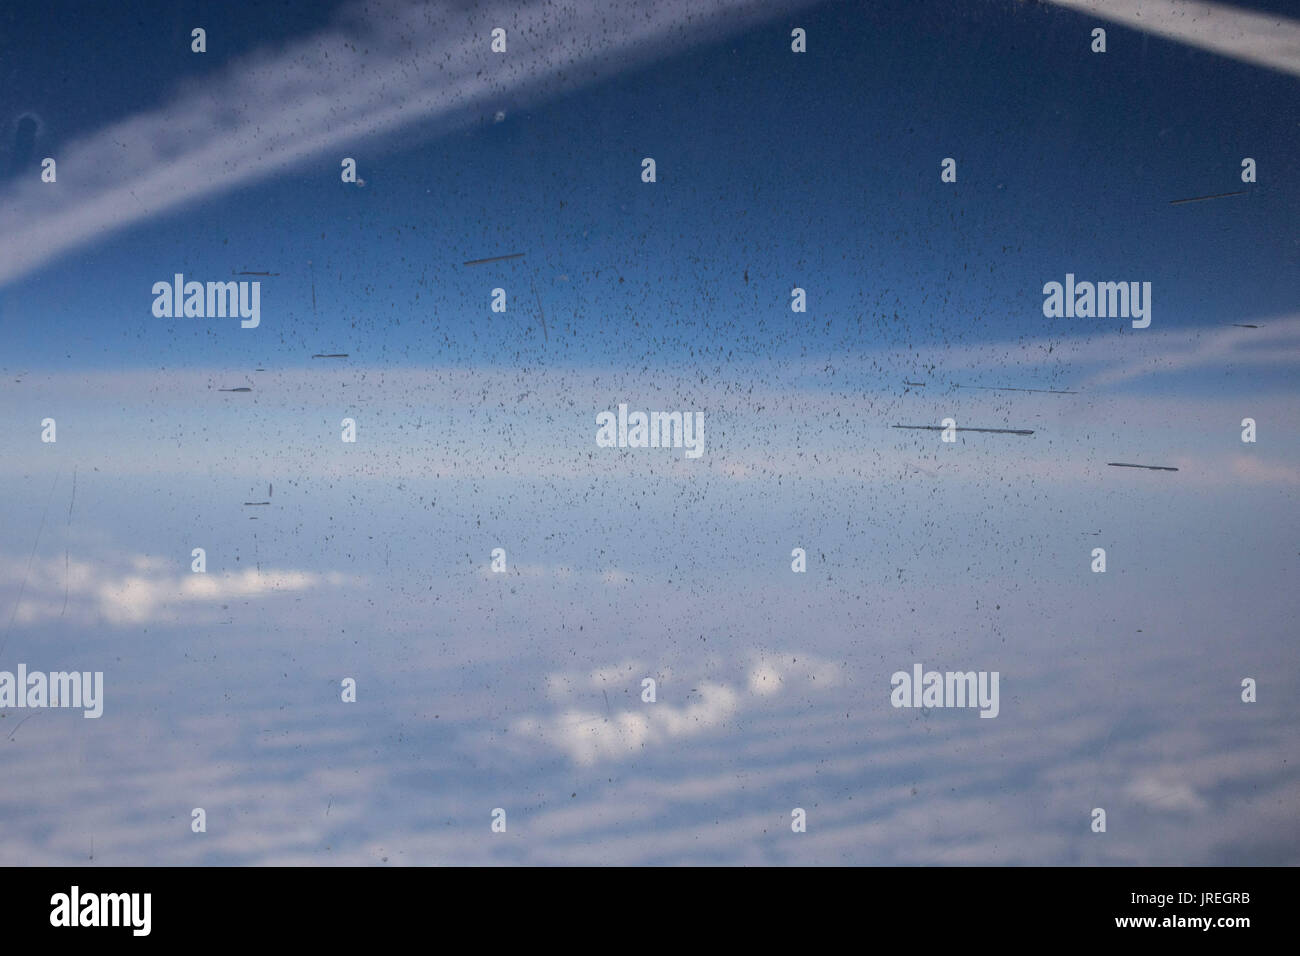 View of sky from dirty aeroplane window. - Stock Image